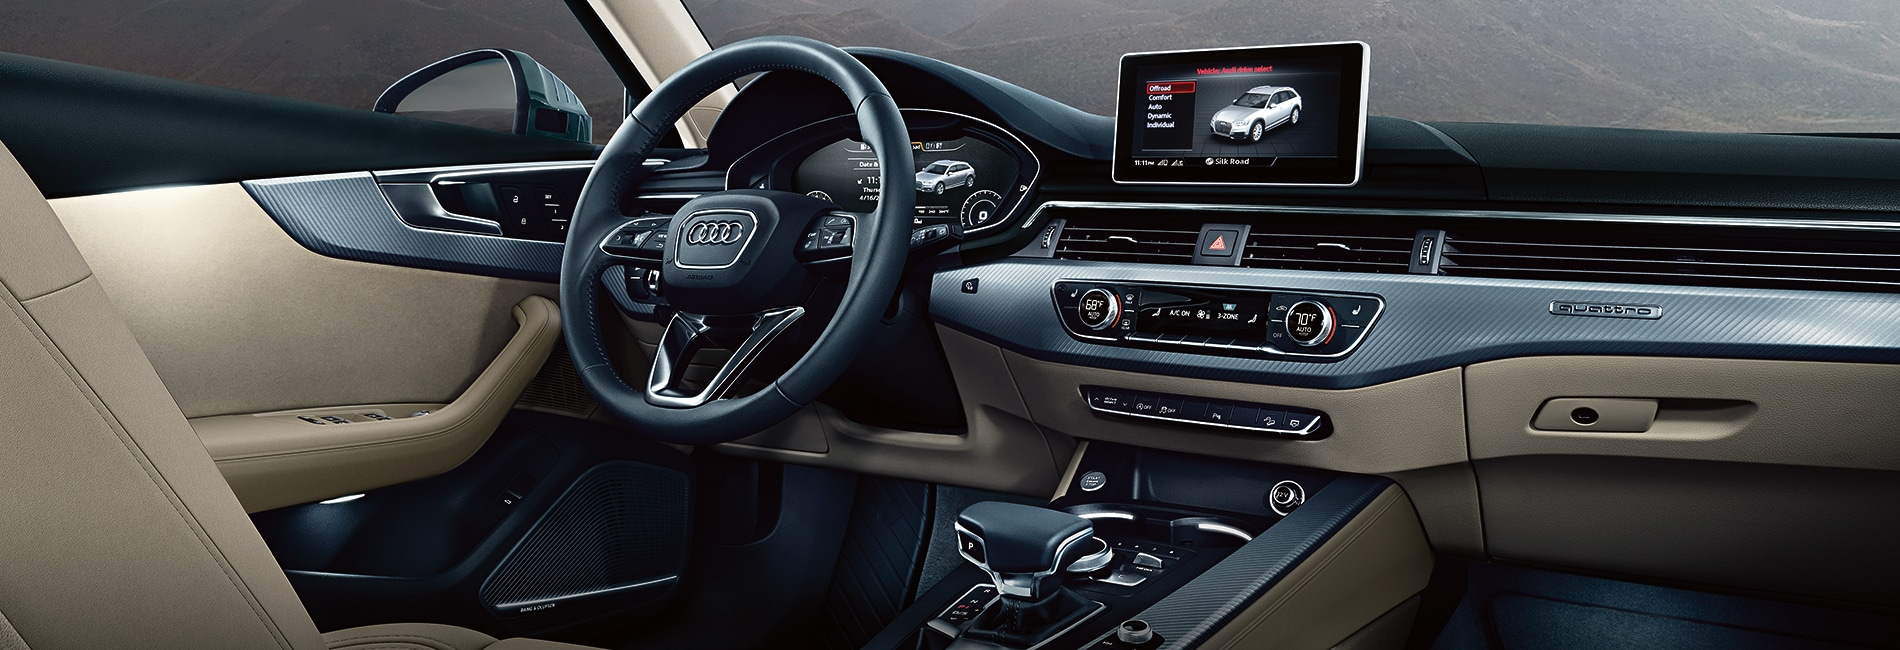 Audi A4 Interior Vehicle Features